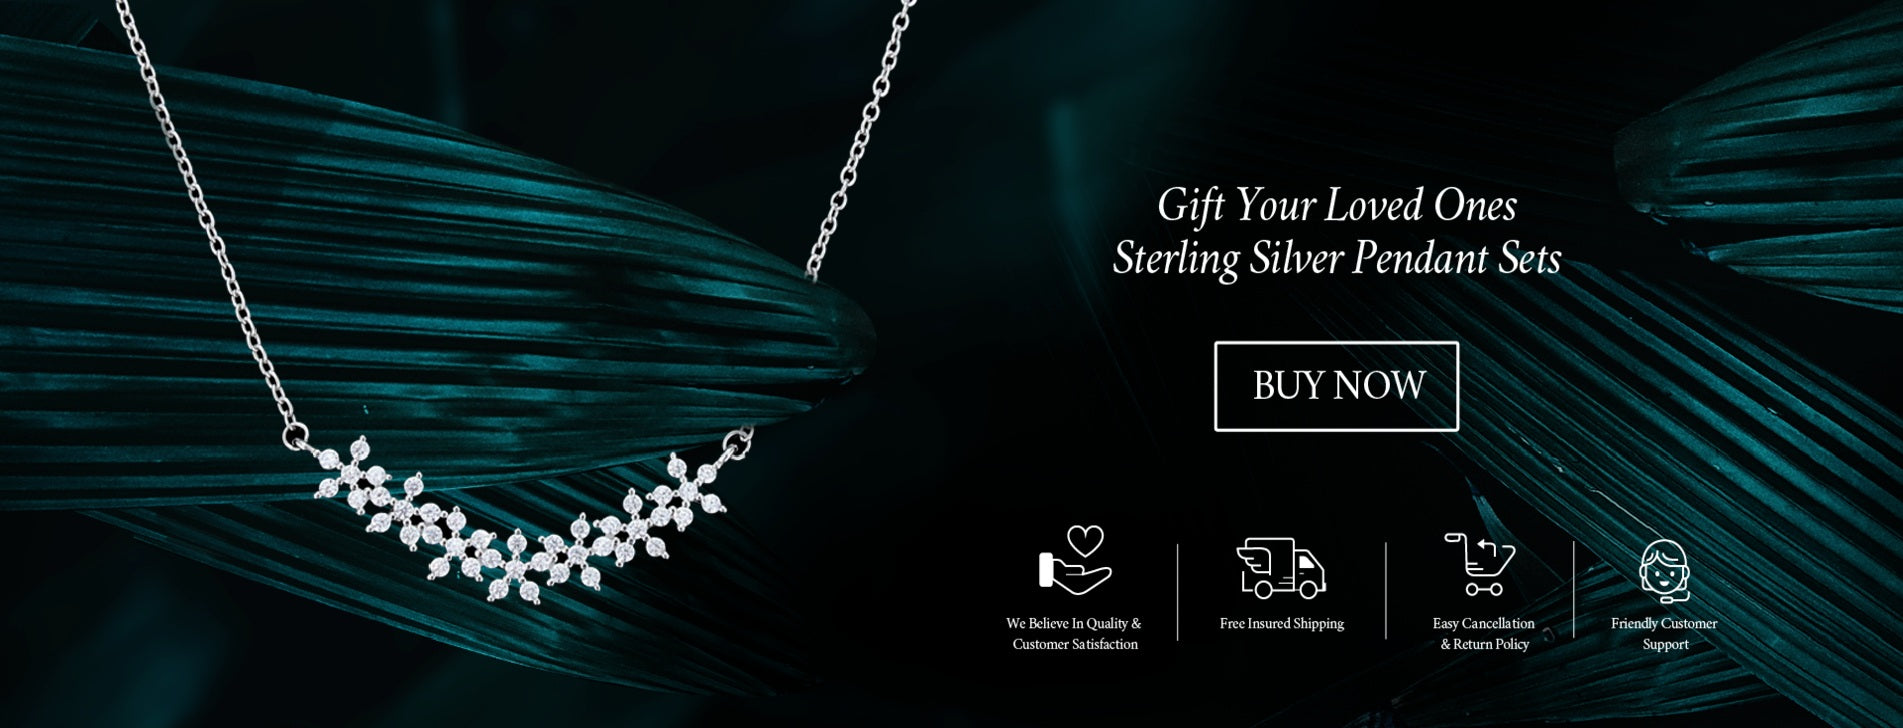 Gift Your Loved Ones Beautiful Sterling Silver Pendant.